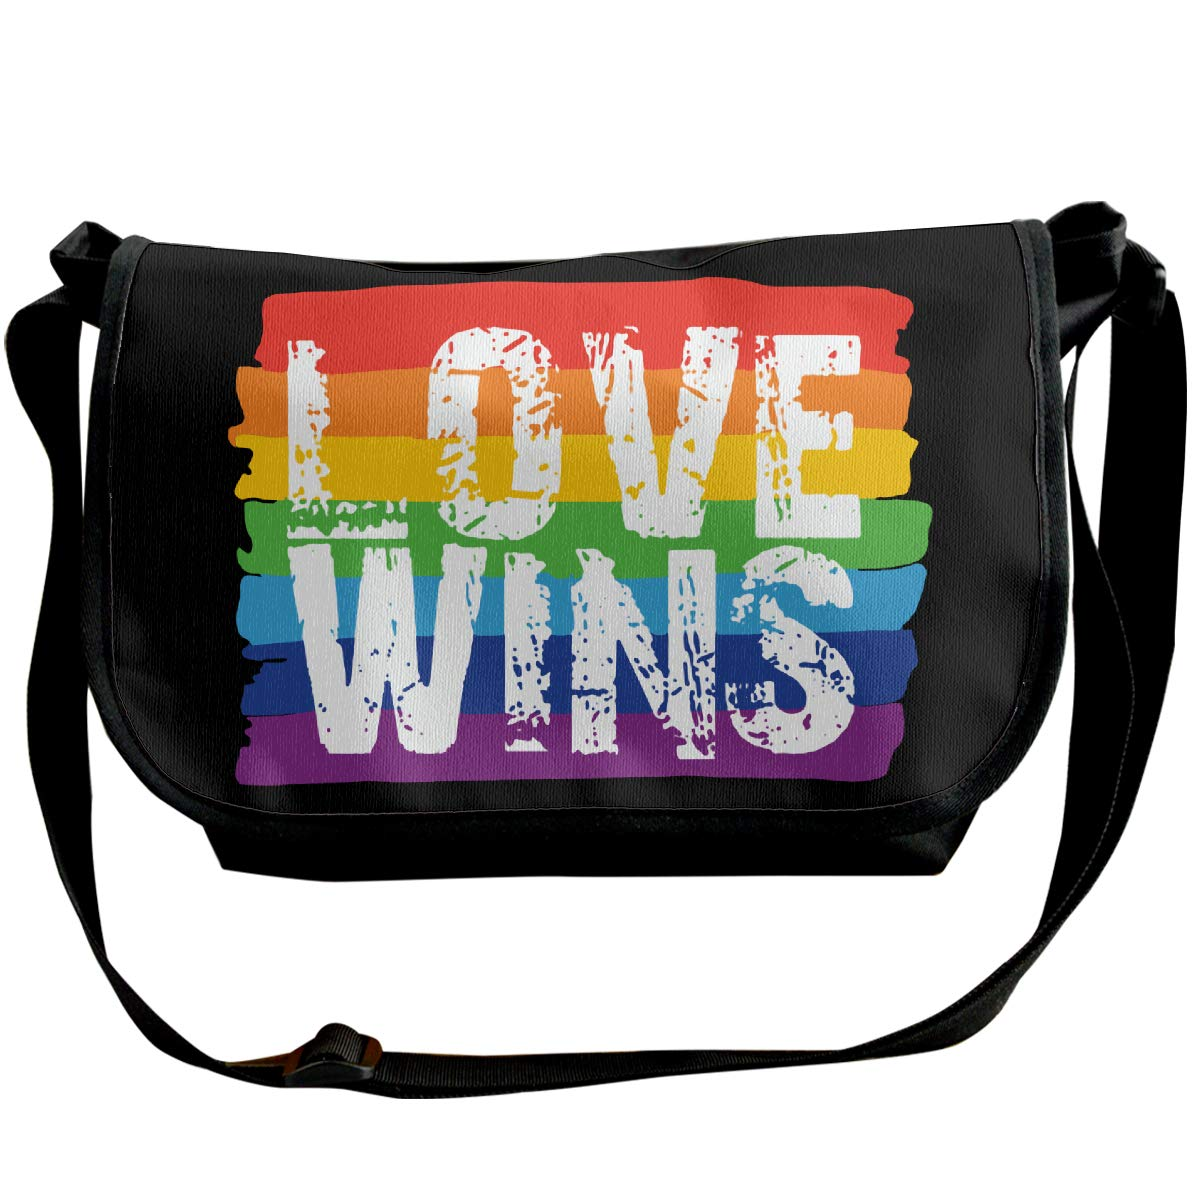 Futong Huaxia LGBT Gay Pride Love Wins Travel Messenger Bags Handbag Shoulder Bag Crossbody Bag Unisex